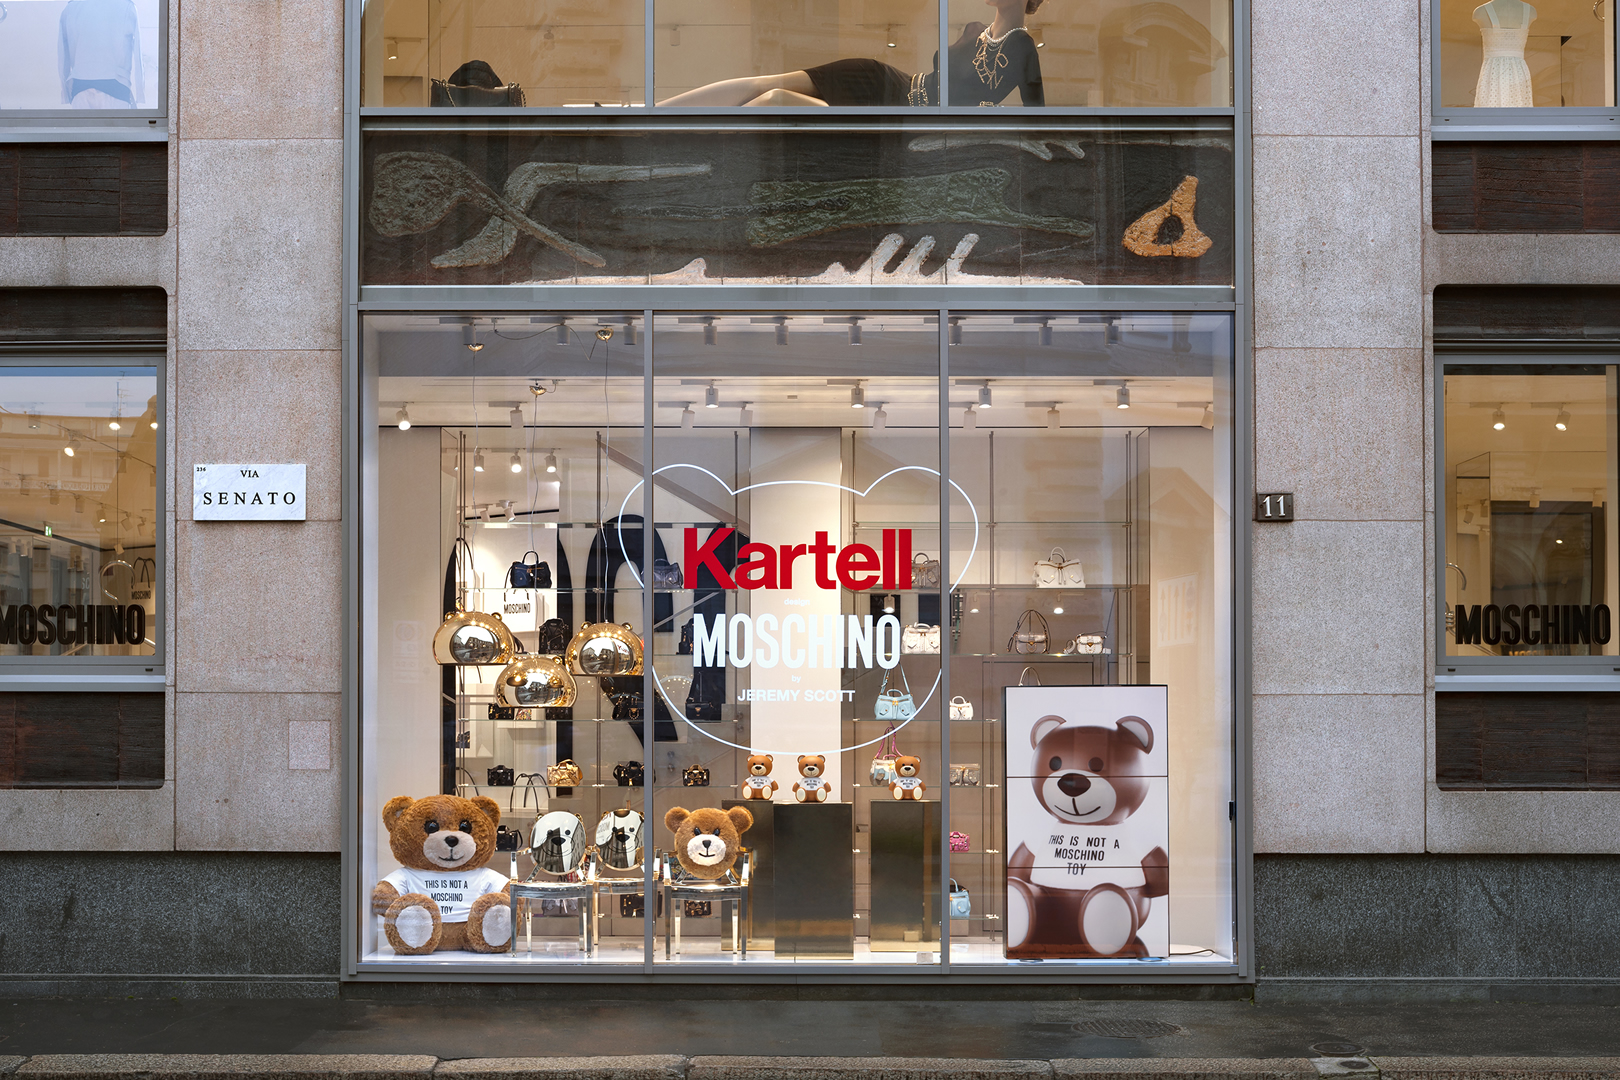 Moschino loves Kartell - Design Diffusion